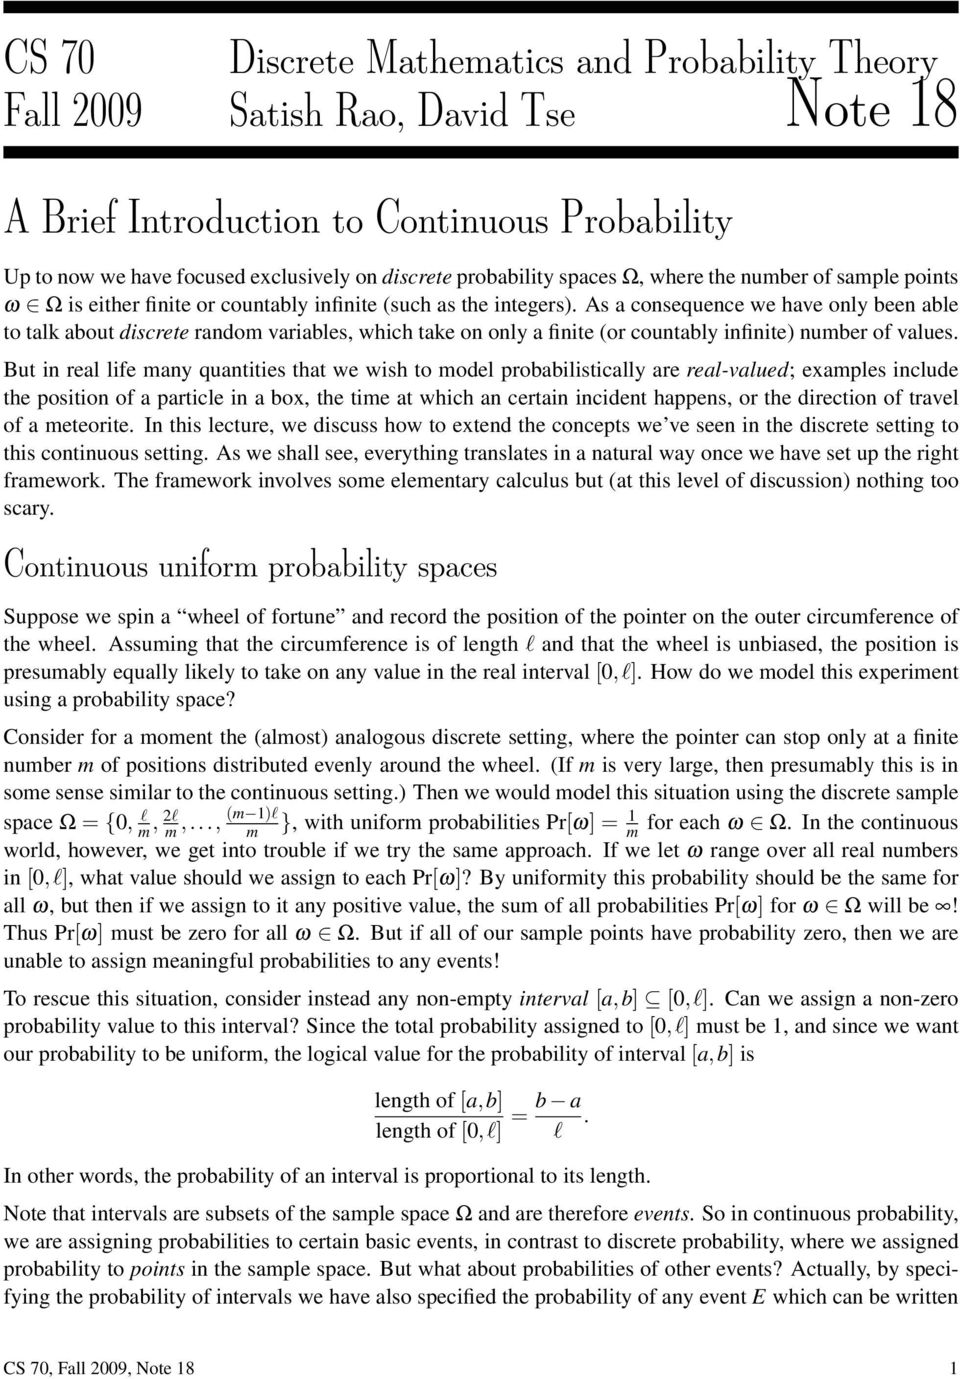 As a consequence we have only been able to talk about discrete random variables, which take on only a finite (or countably infinite) number of values.